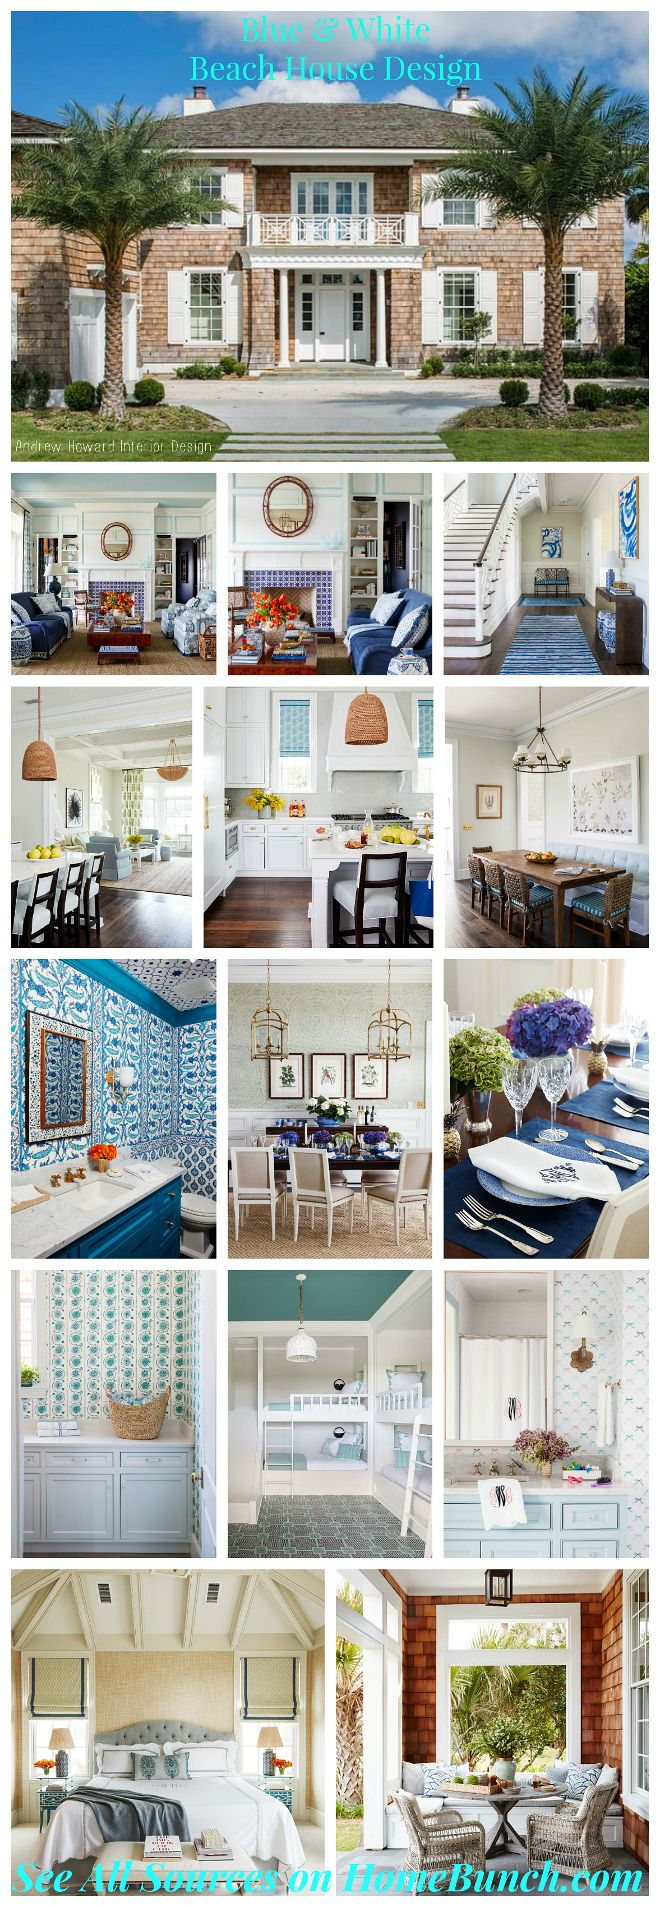 New 2017 Interior Design Tips and Ideas.  like the turquoise ceiling.  dmg